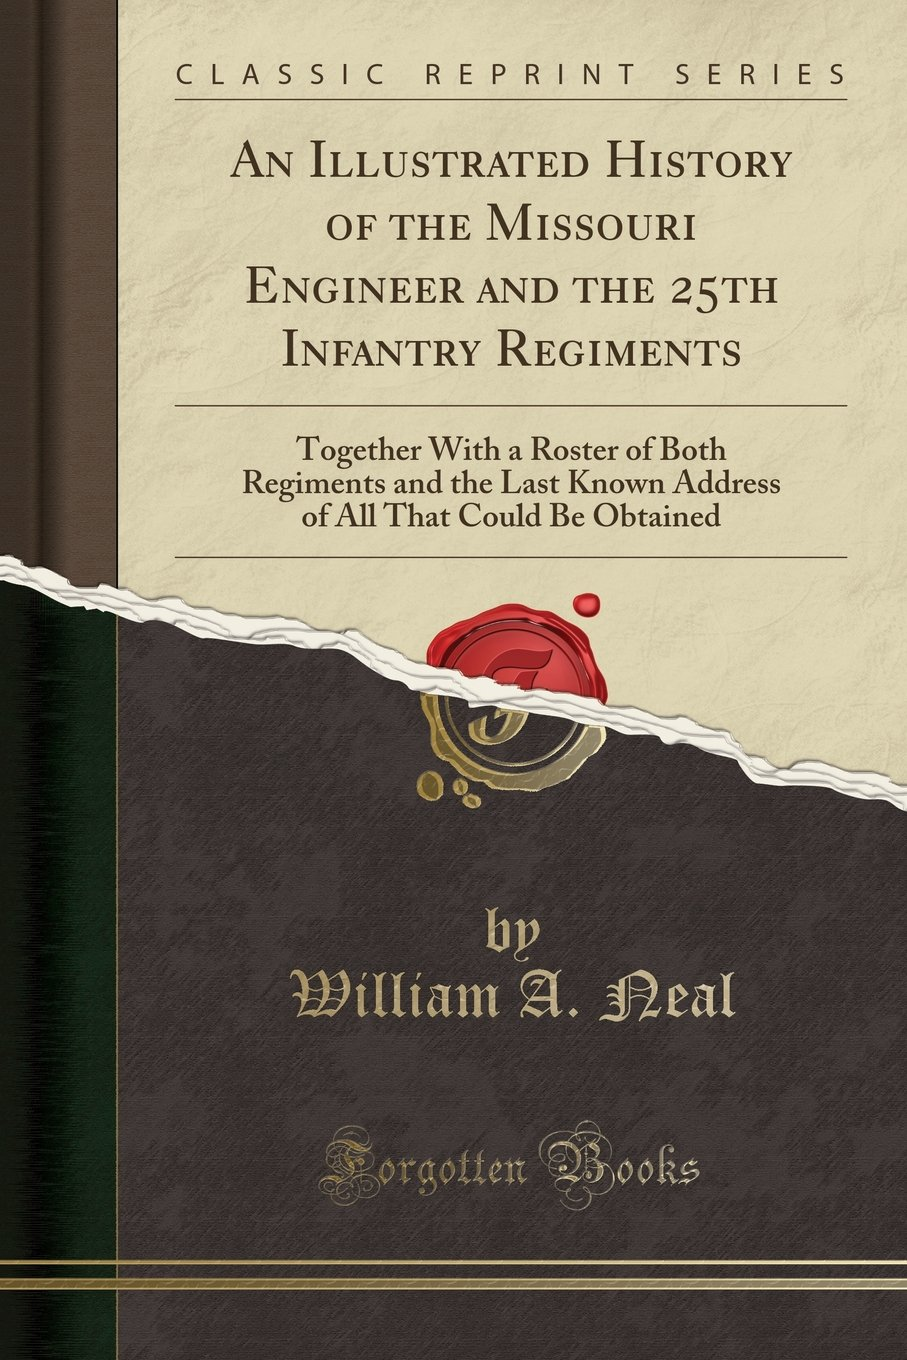 Download An Illustrated History of the Missouri Engineer and the 25th Infantry Regiments: Together with a Roster of Both Regiments and the Last Known Address of All That Could Be Obtained (Classic Reprint) ebook